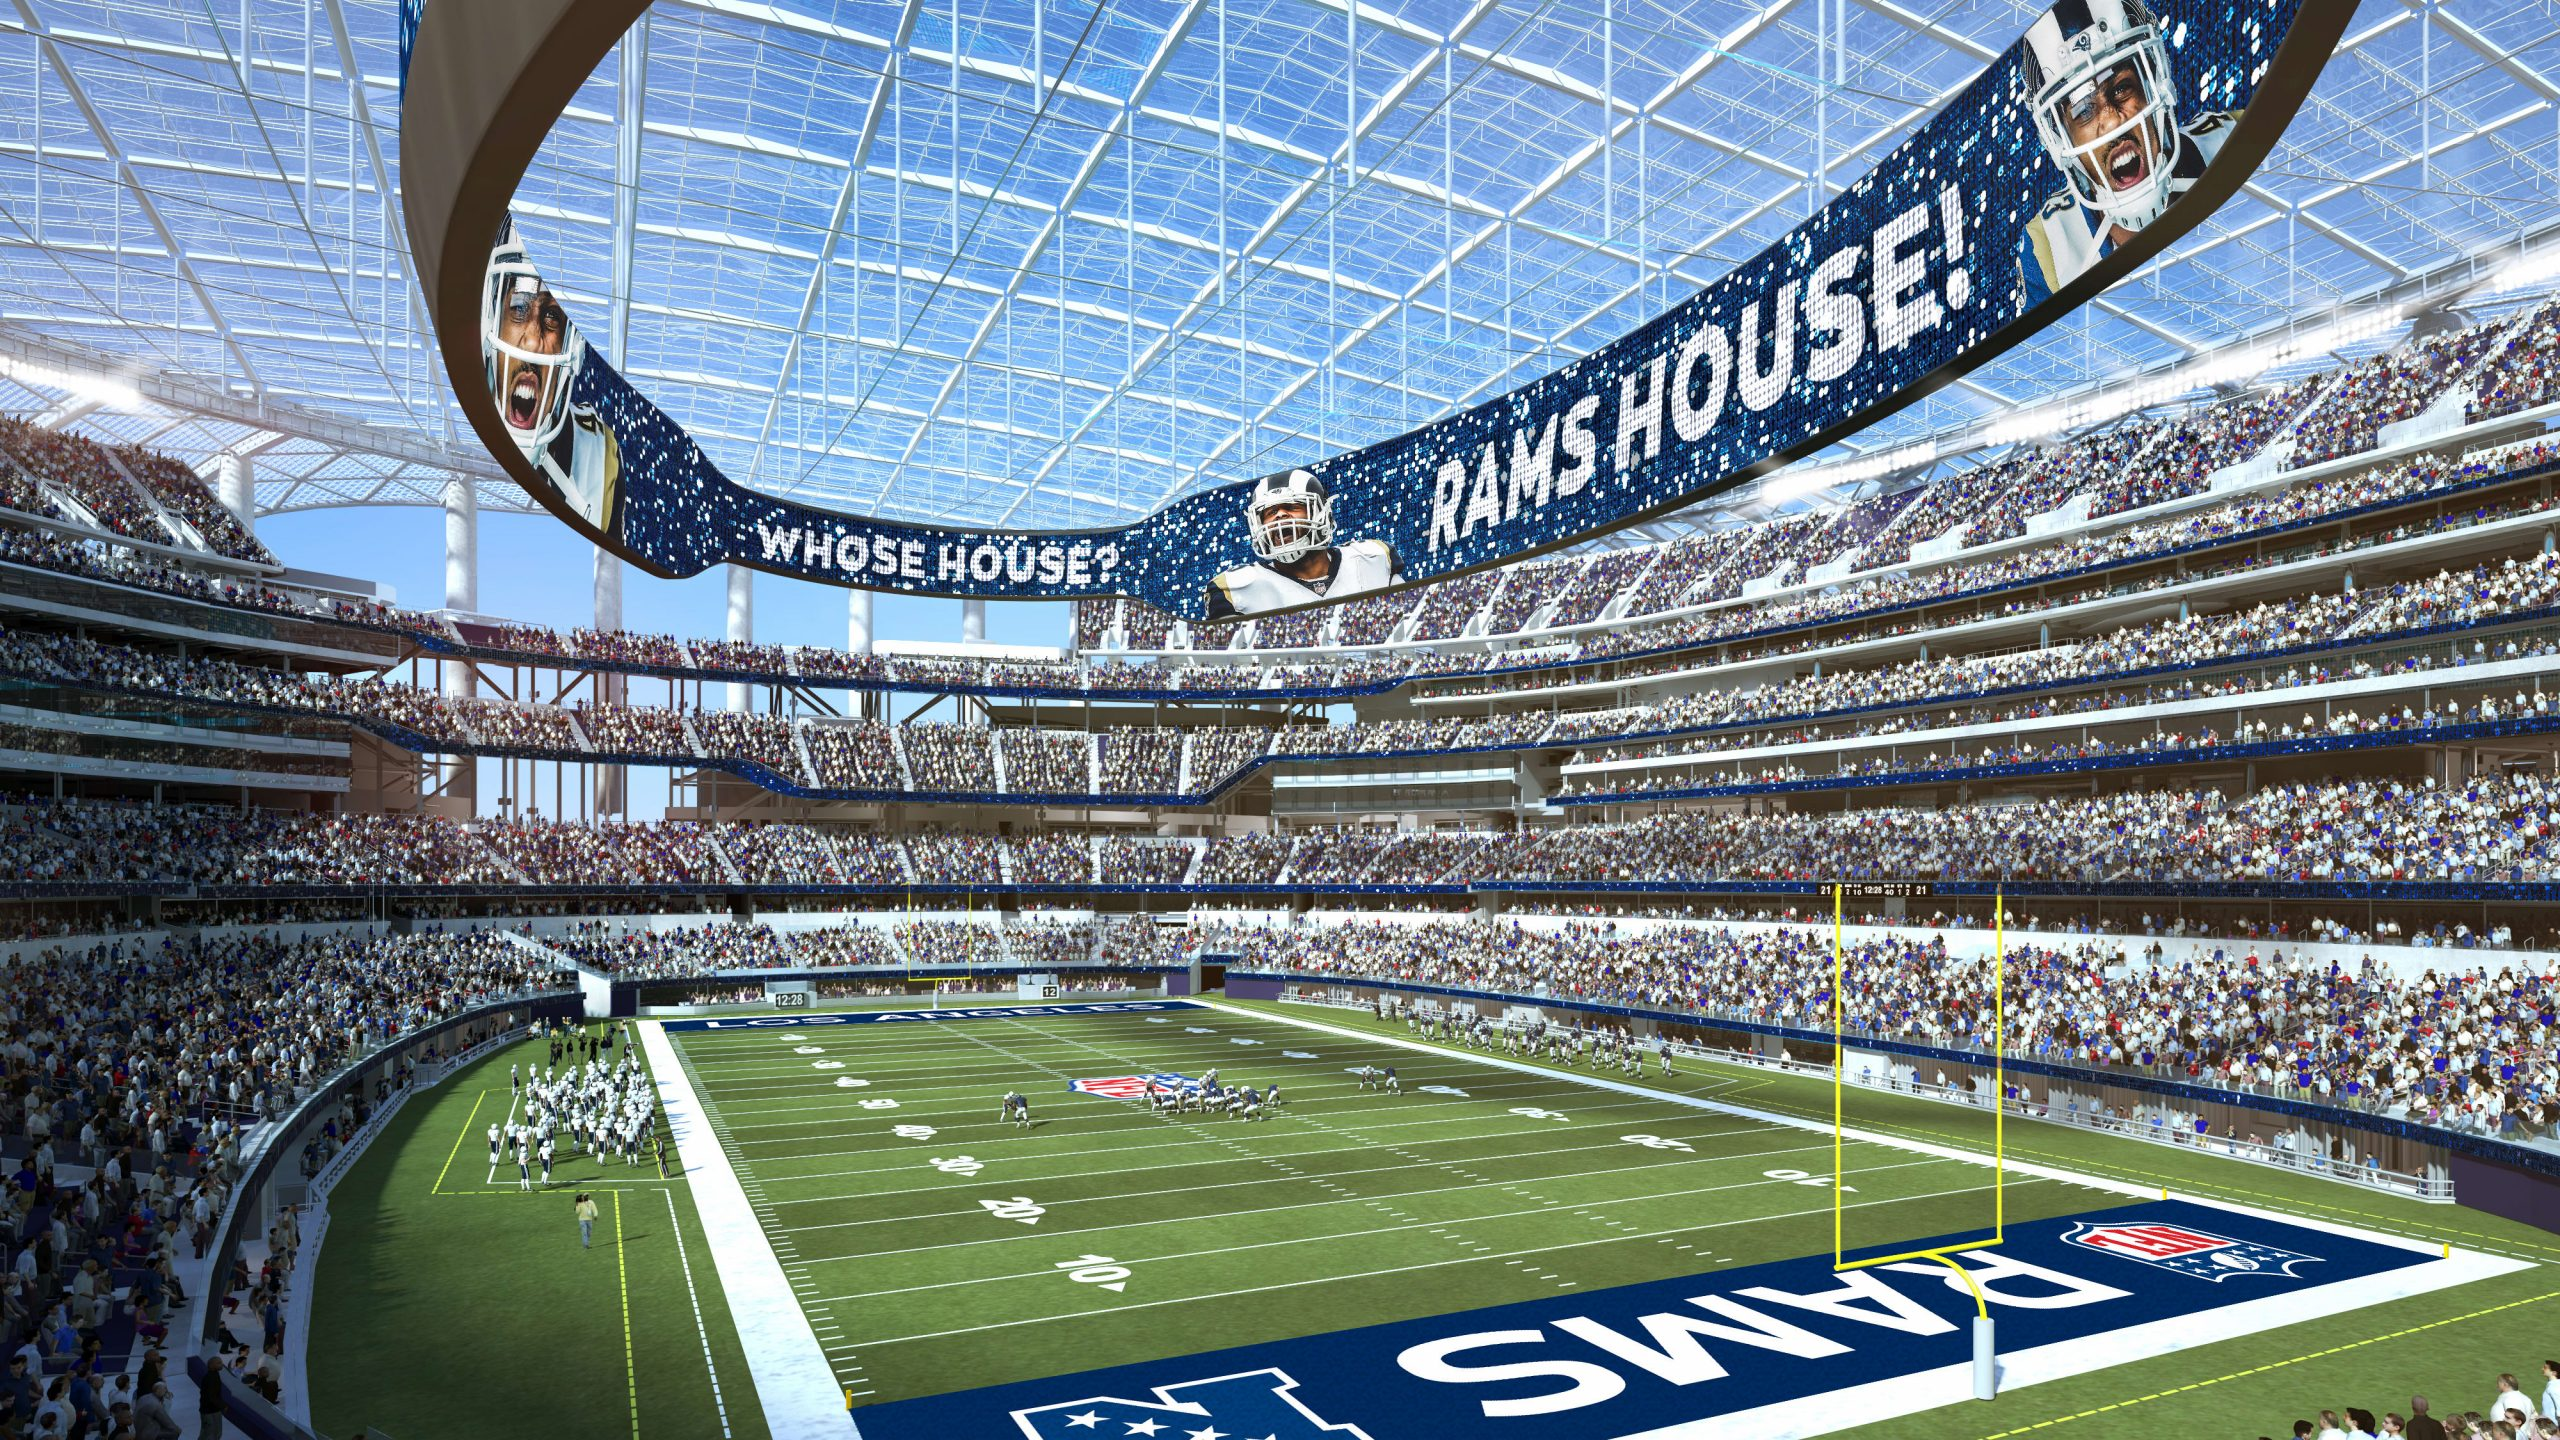 la-rams-ready-for-kickoff-in-new,-$5-billion-high-tech-sofi-stadium-—-without-fans